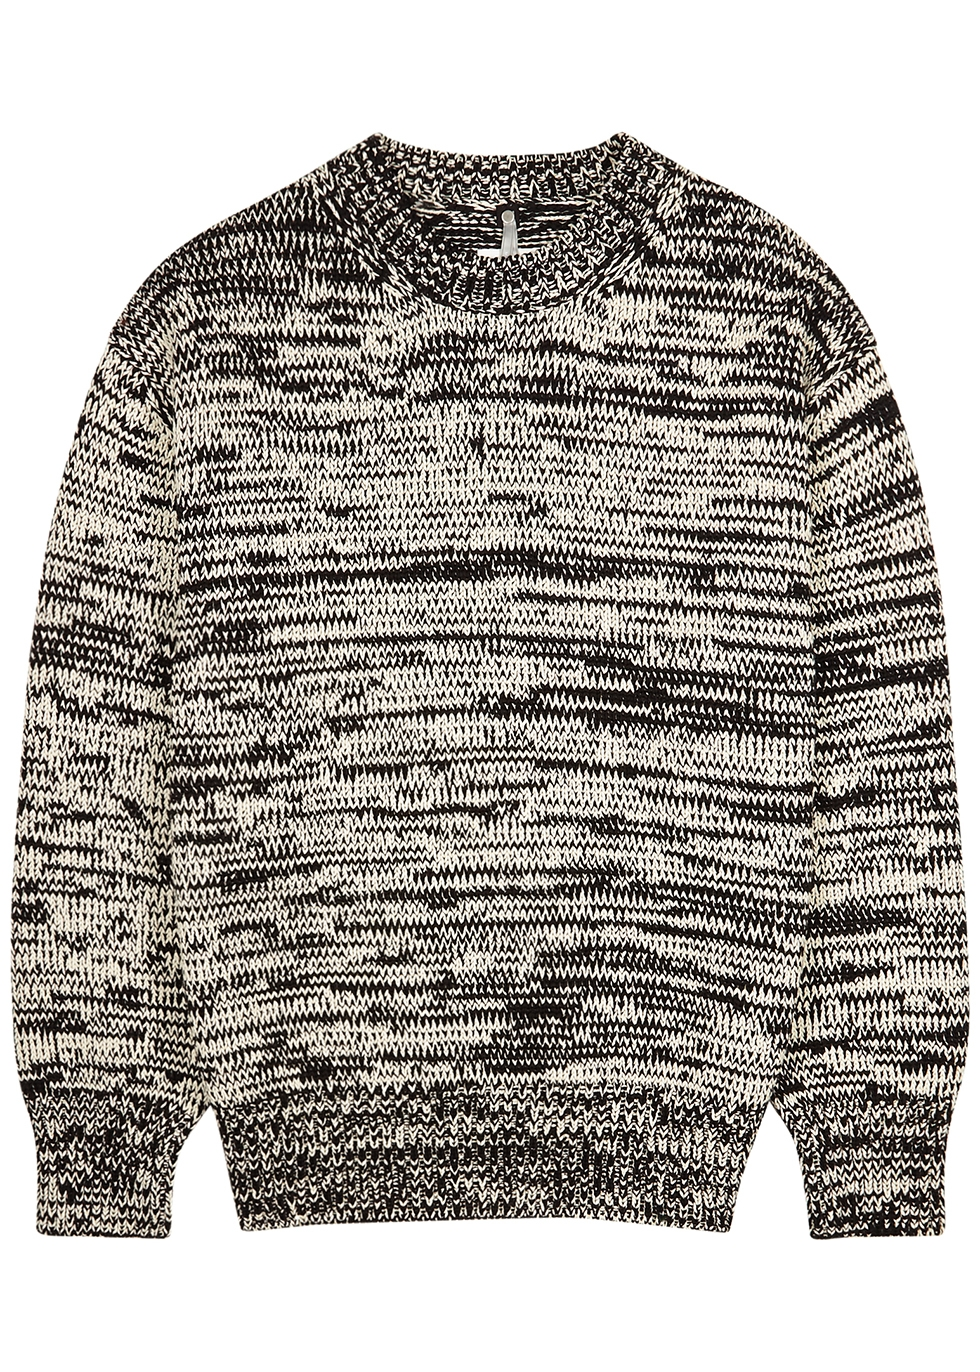 Monochrome knitted cotton jumper